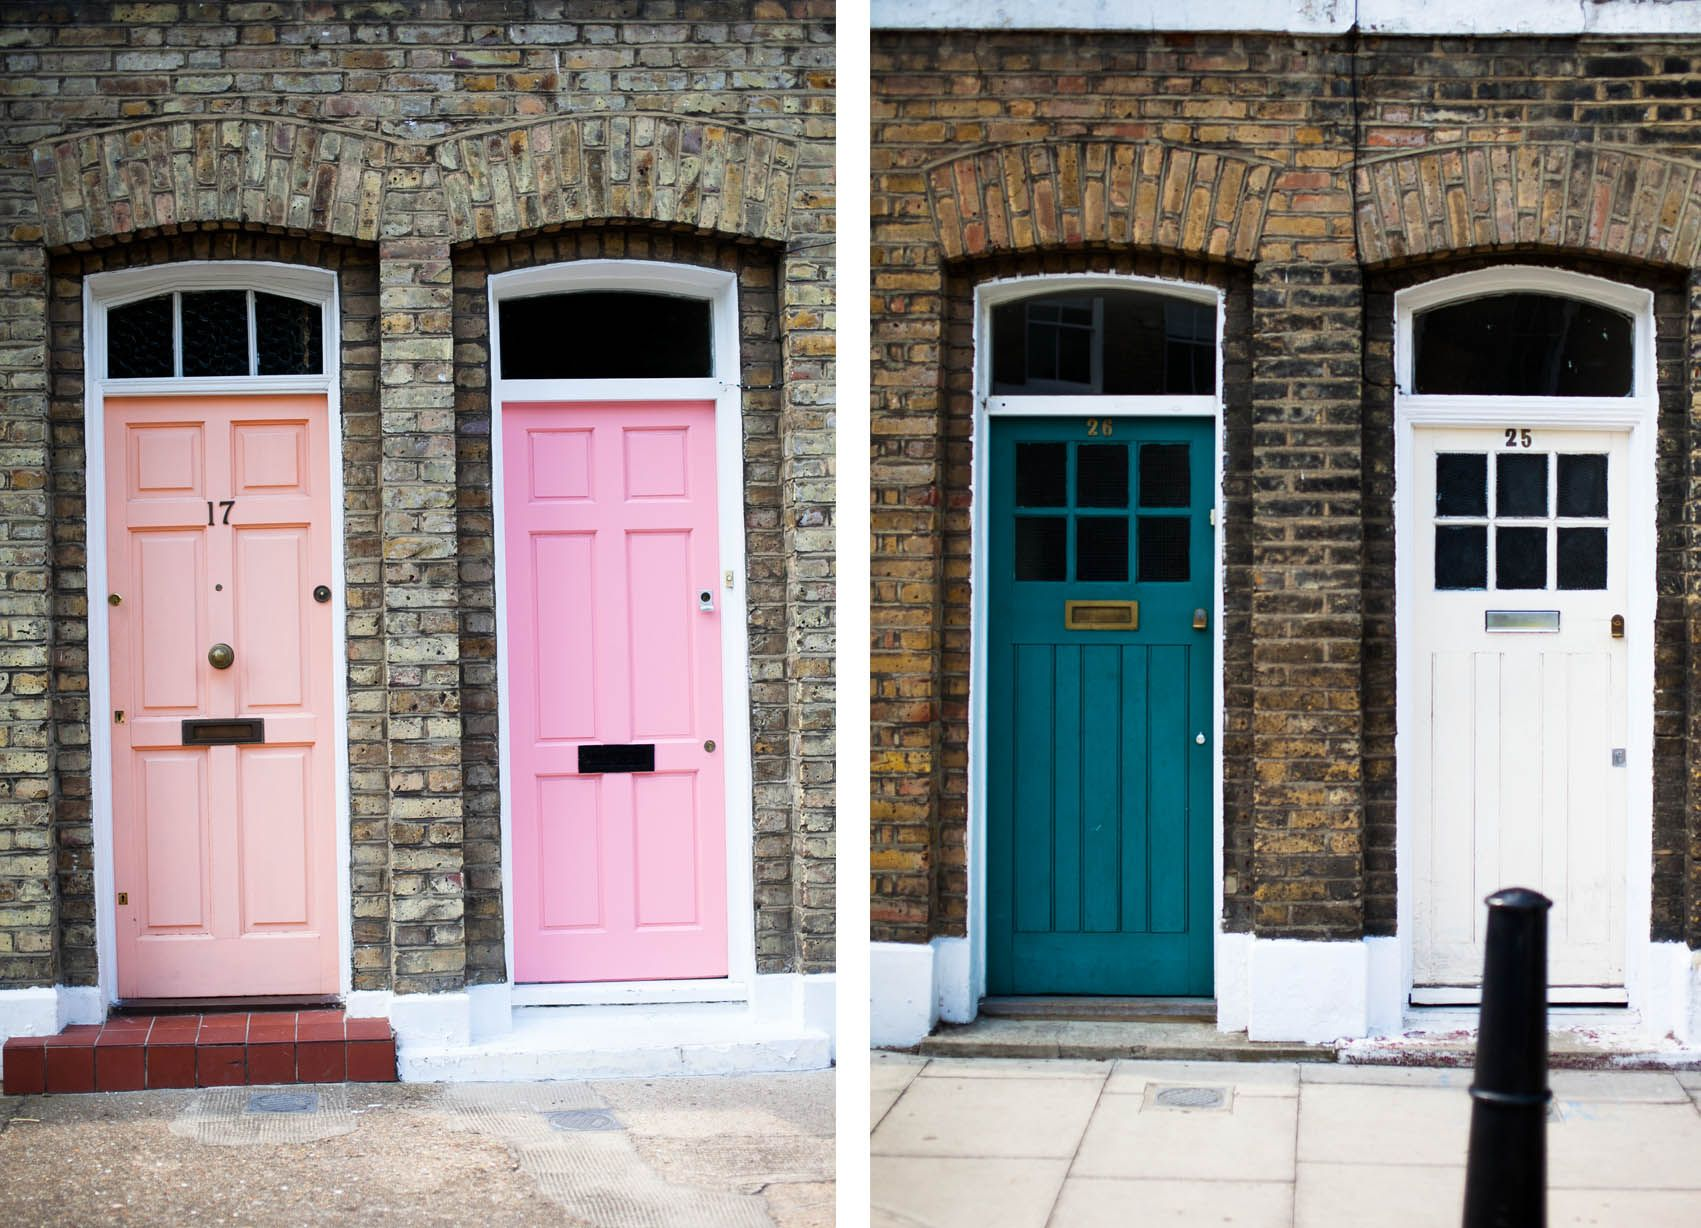 1940 S Doors By Colombia Road Flower Market Yum Front Doors Uk Door Color Painted Front Doors